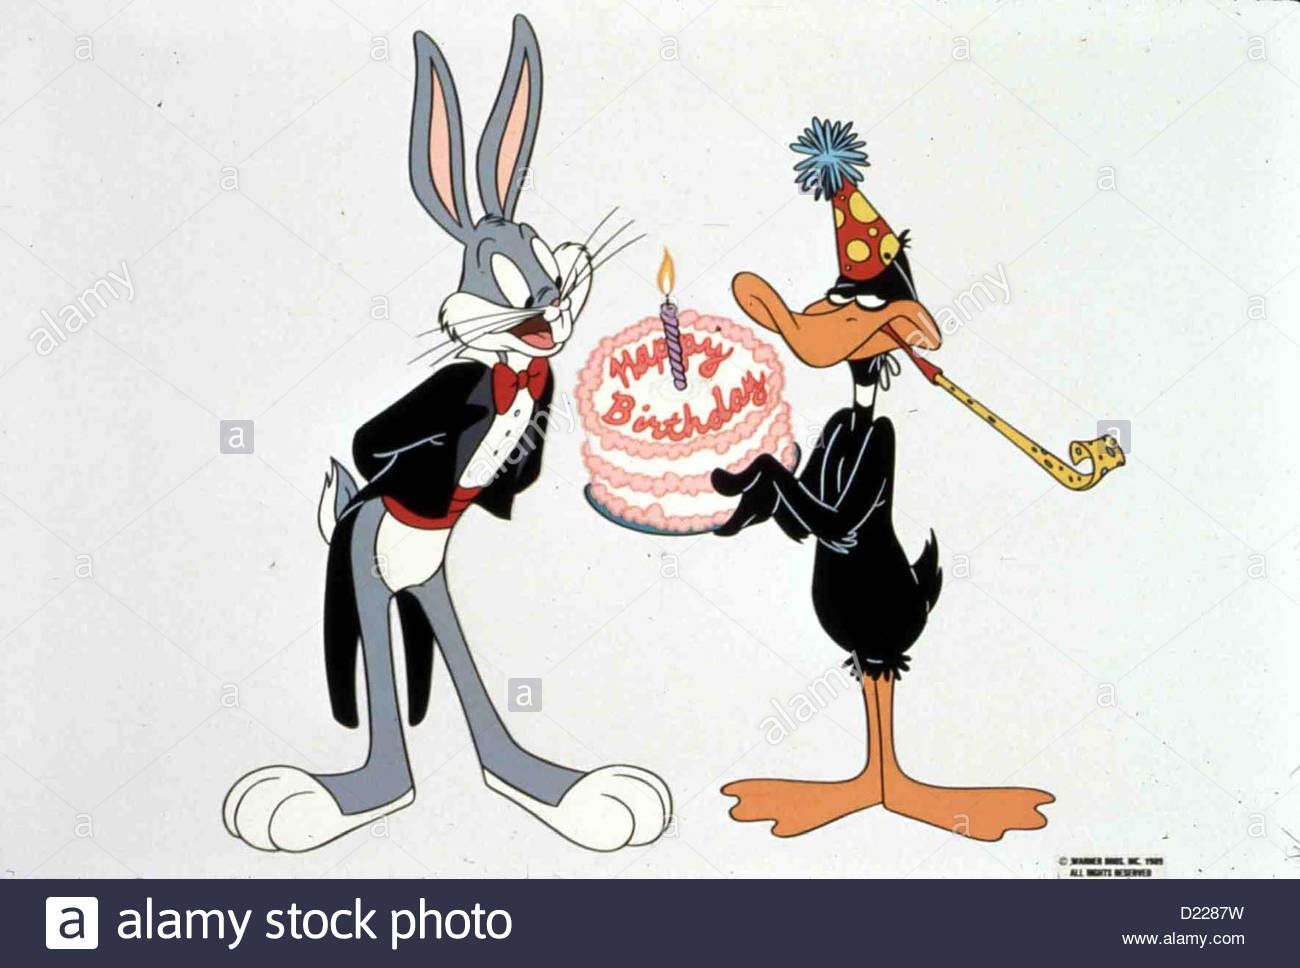 bugs bunny happy birthday ; 811693816408be3e6c811a0764ff7abe